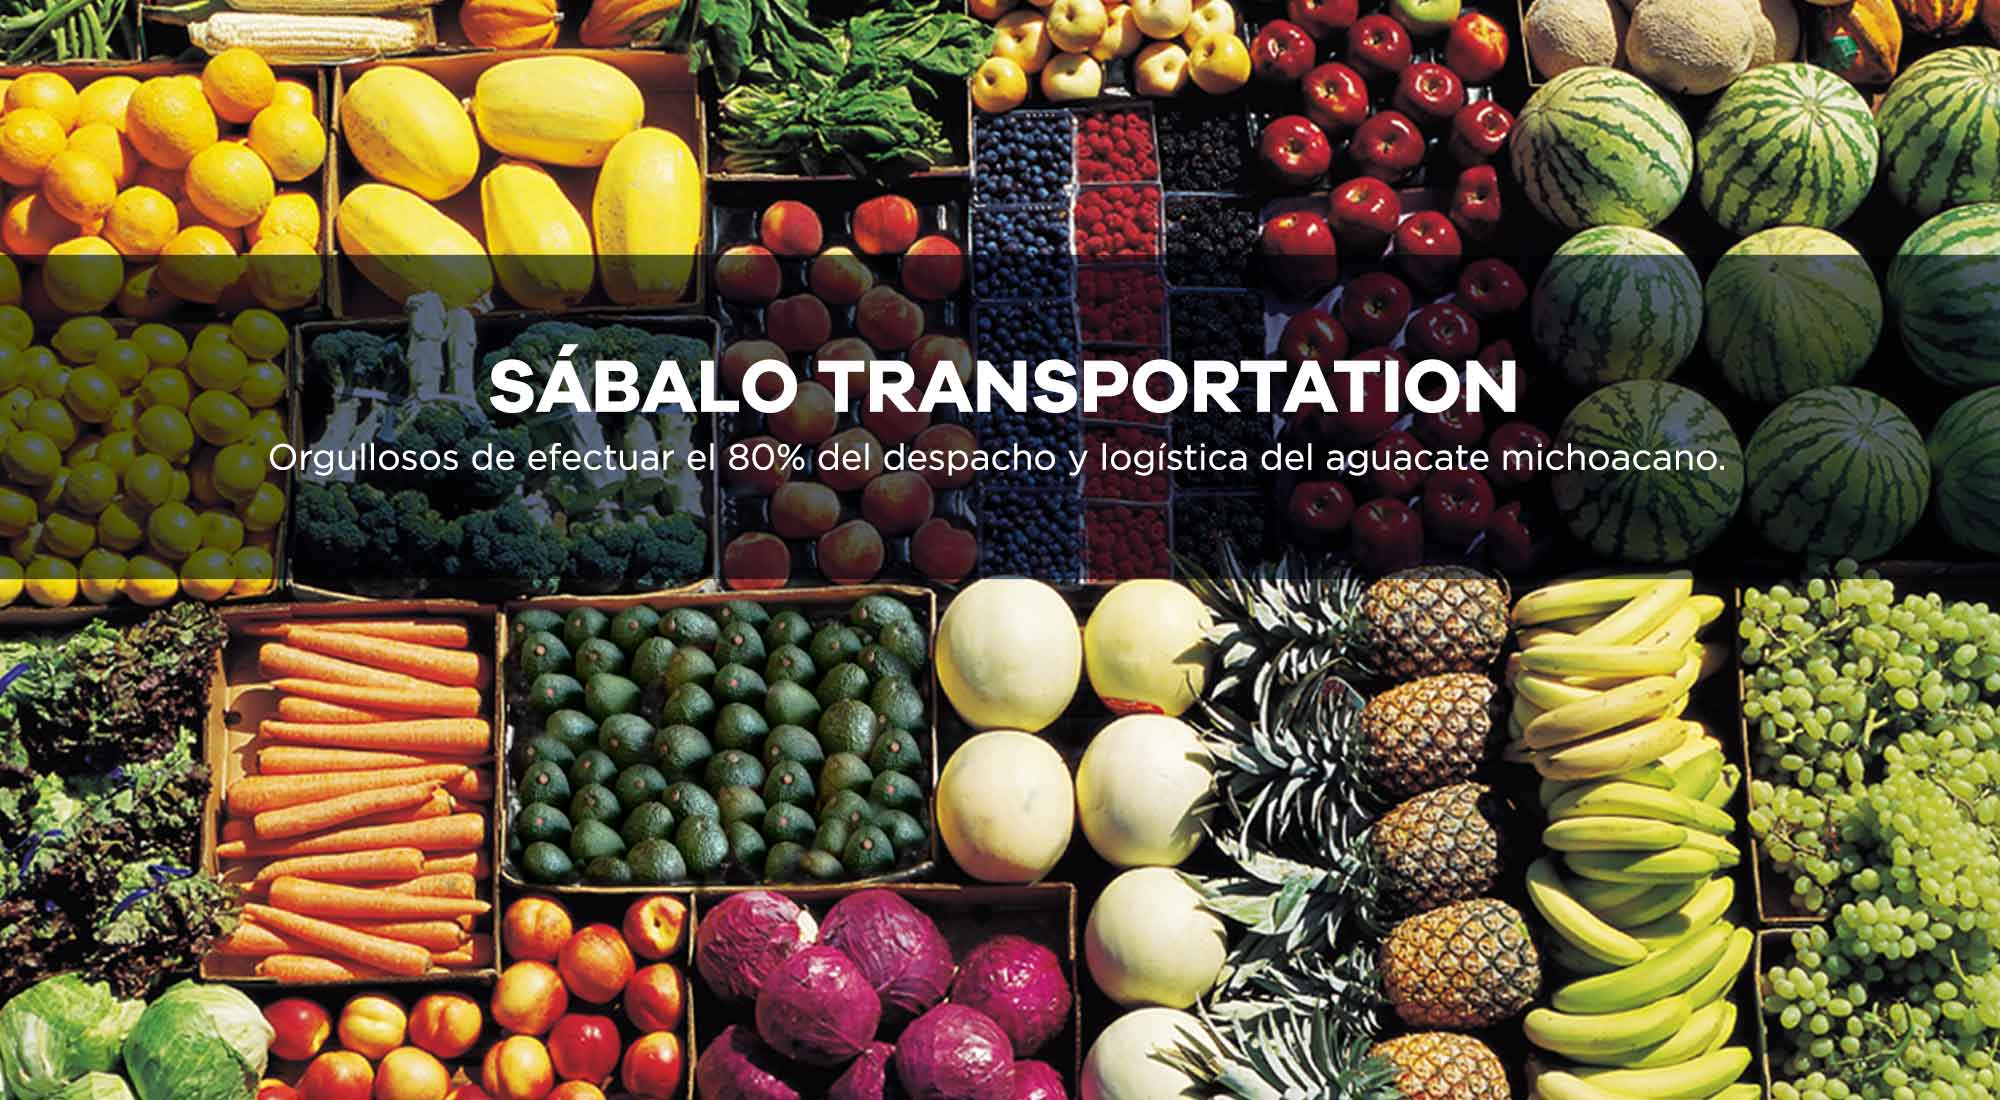 Sábalo transportation